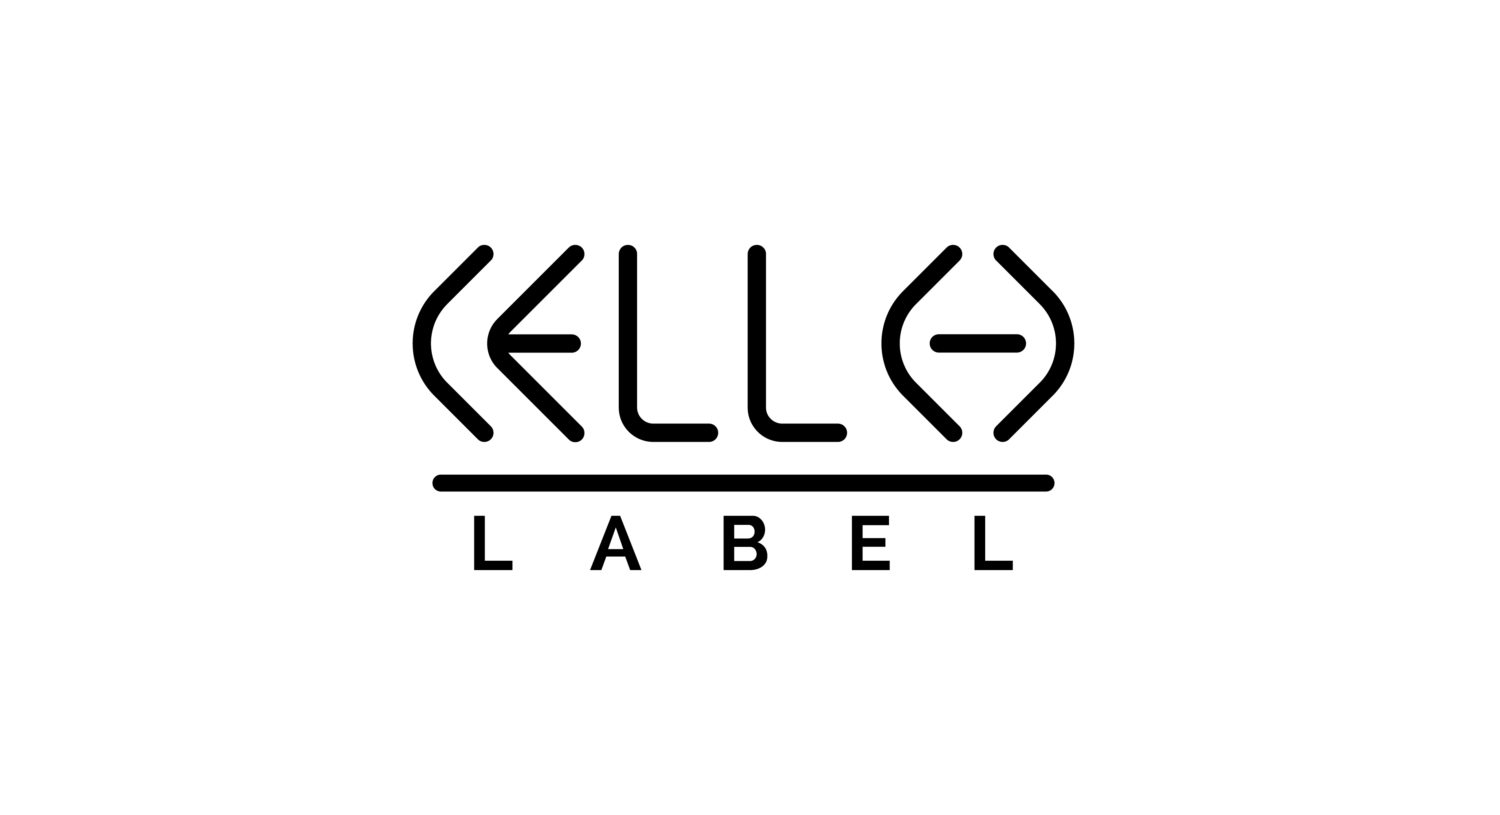 Cello Label